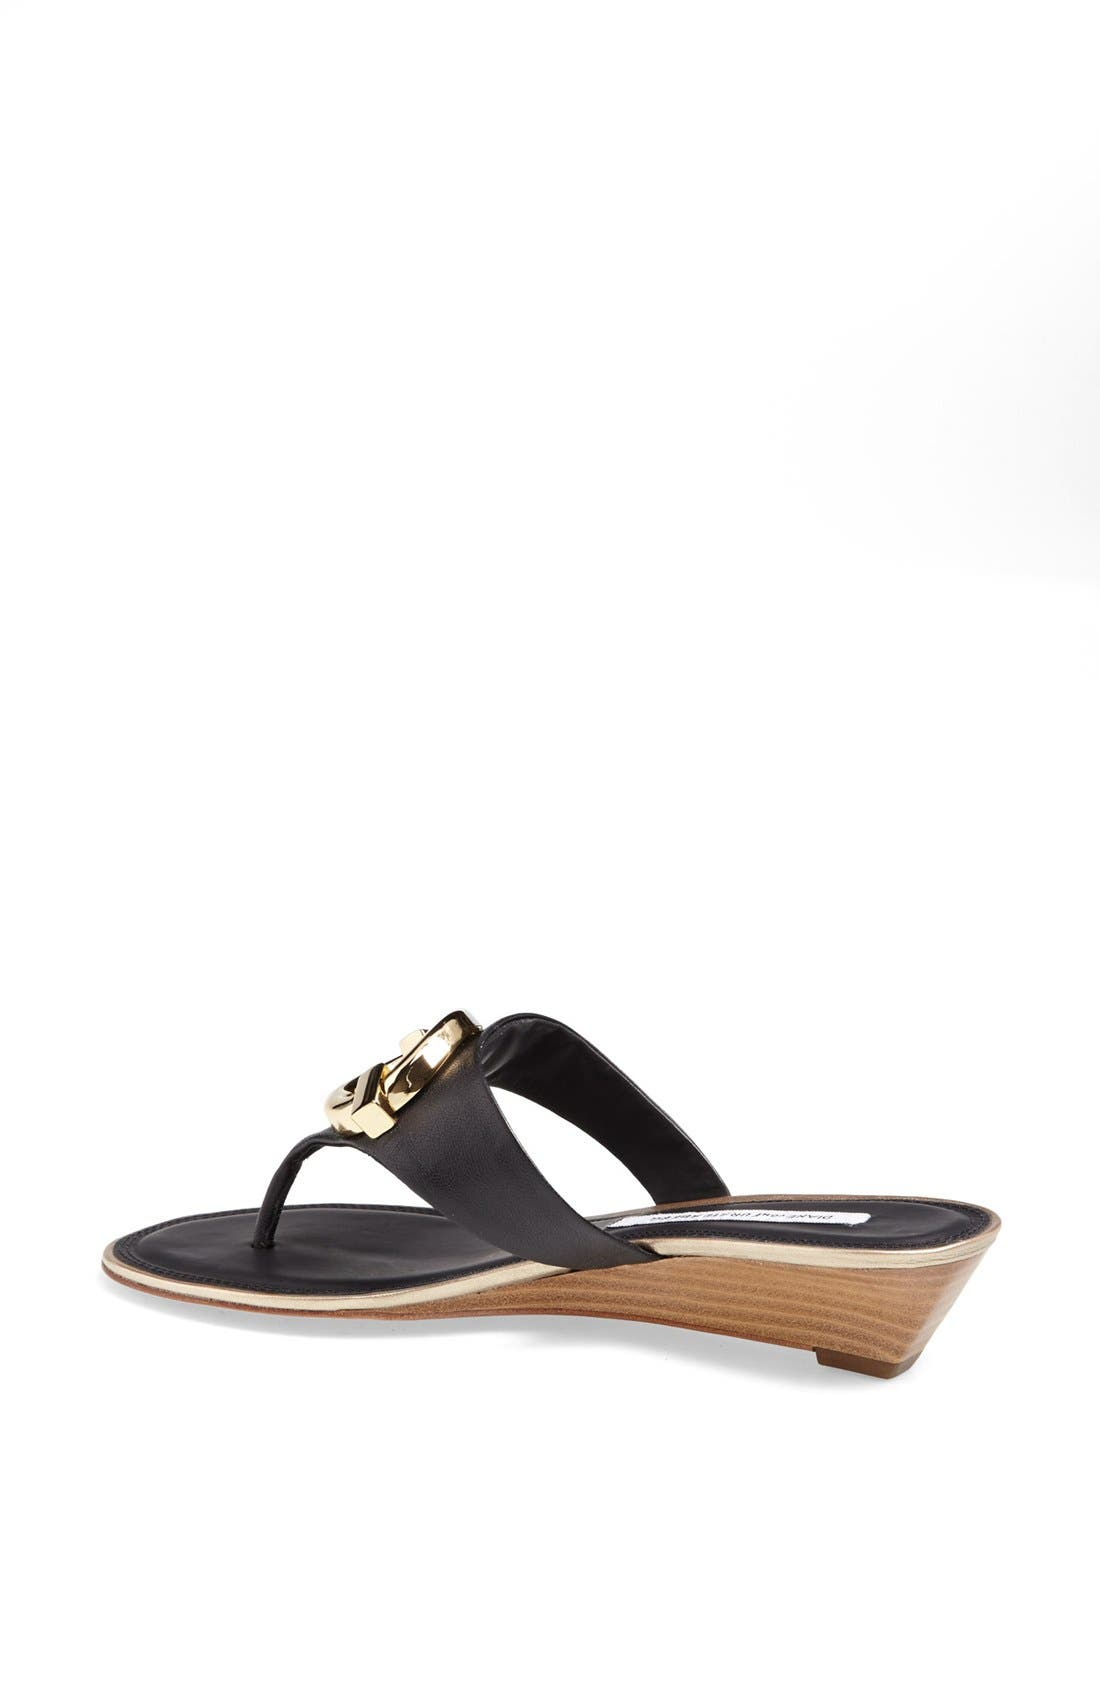 Alternate Image 2  - Diane von Furstenberg 'Tiles' Leather Sandal